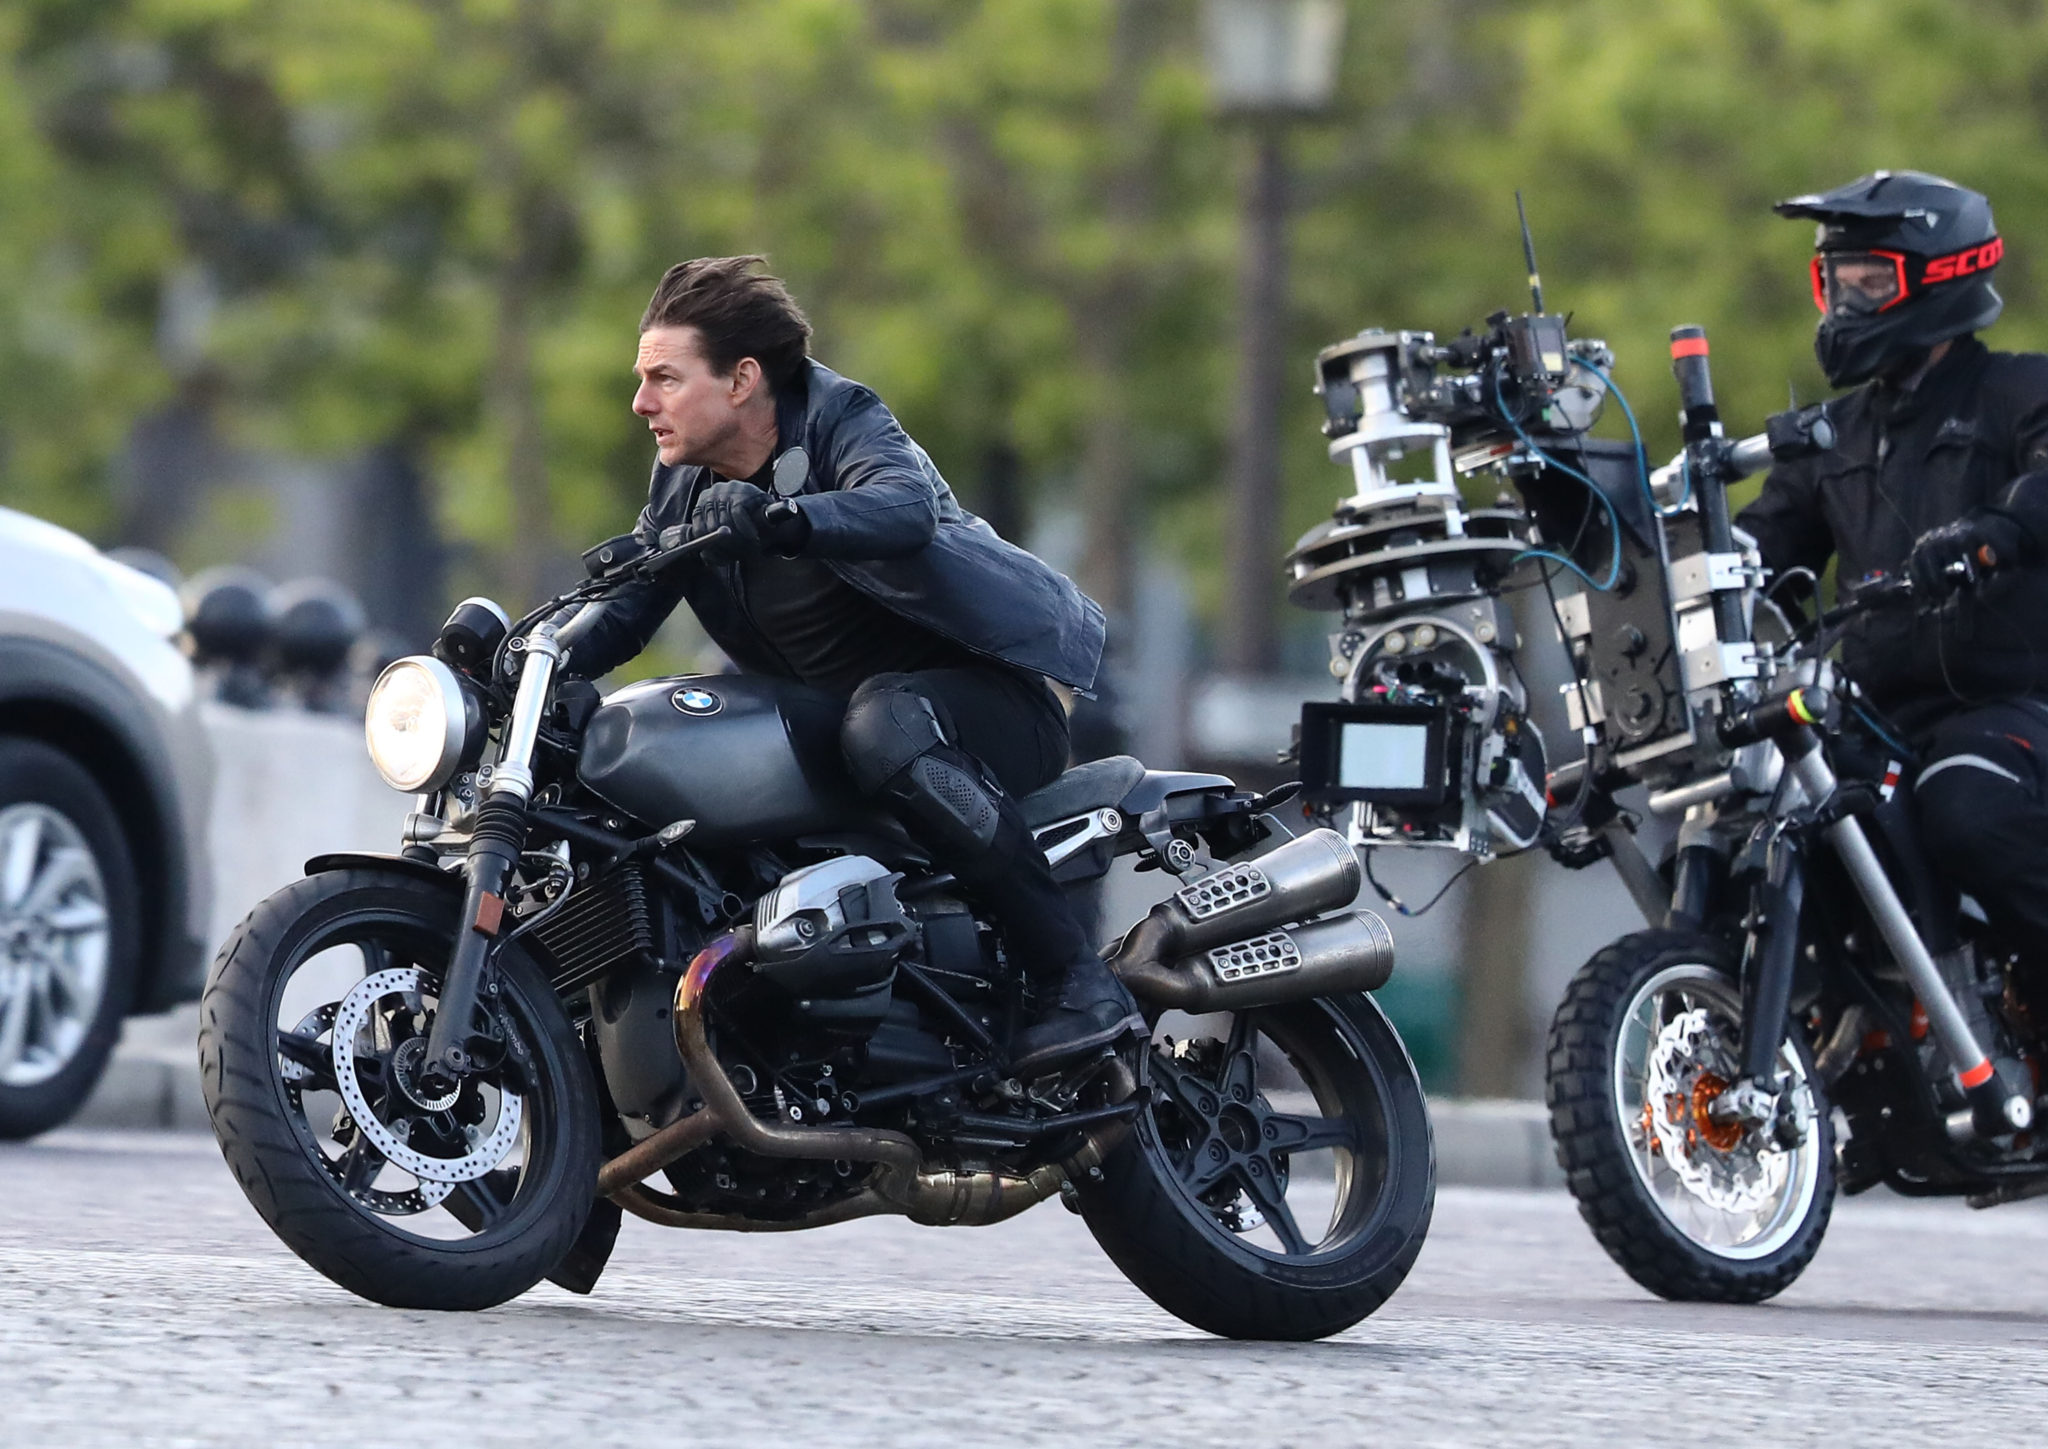 Mission Impossible Motorcycle